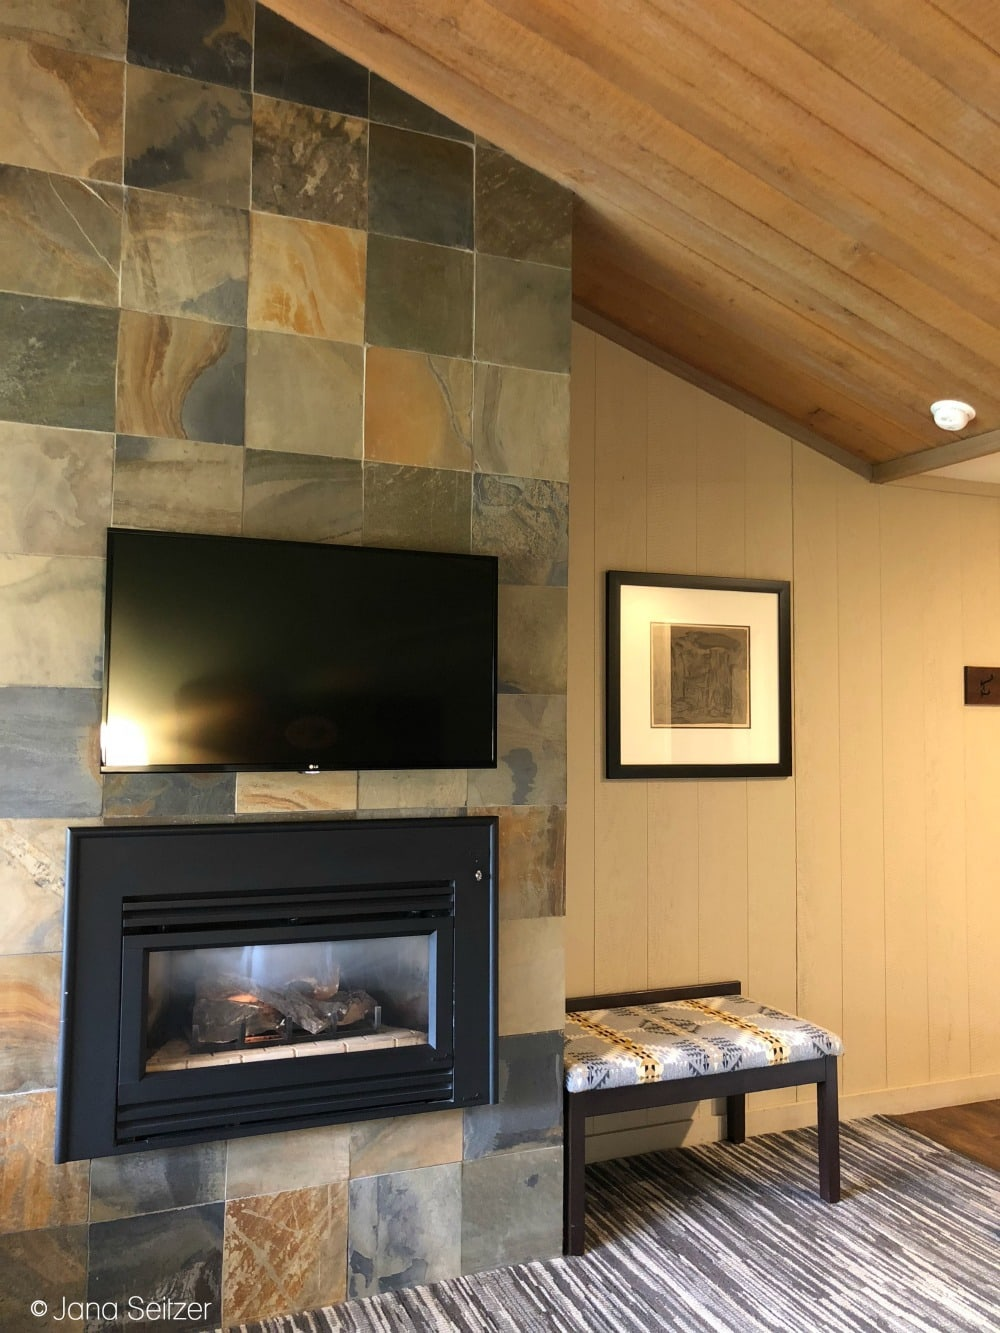 Salishan Resort room with fireplace